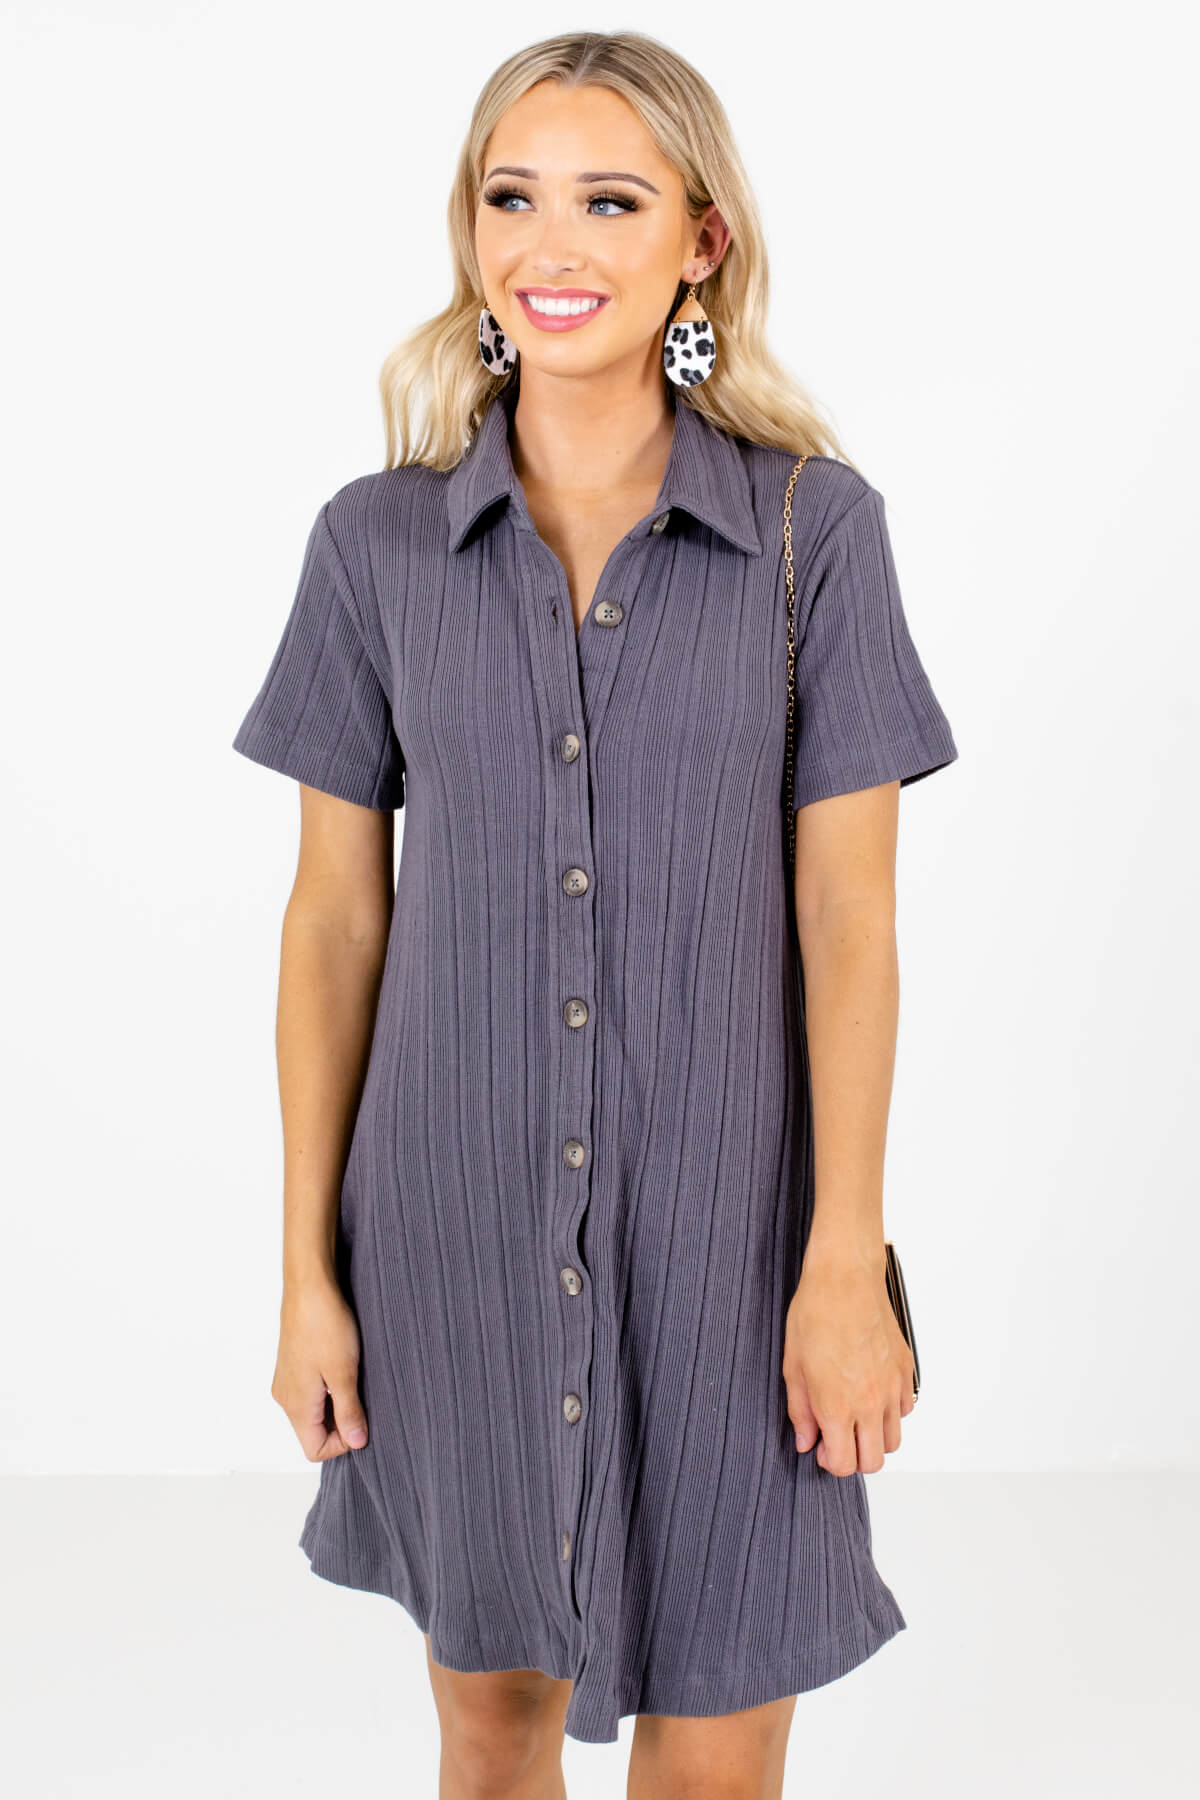 Slate Gray Button-Up Front Boutique Mini Dresses for Women